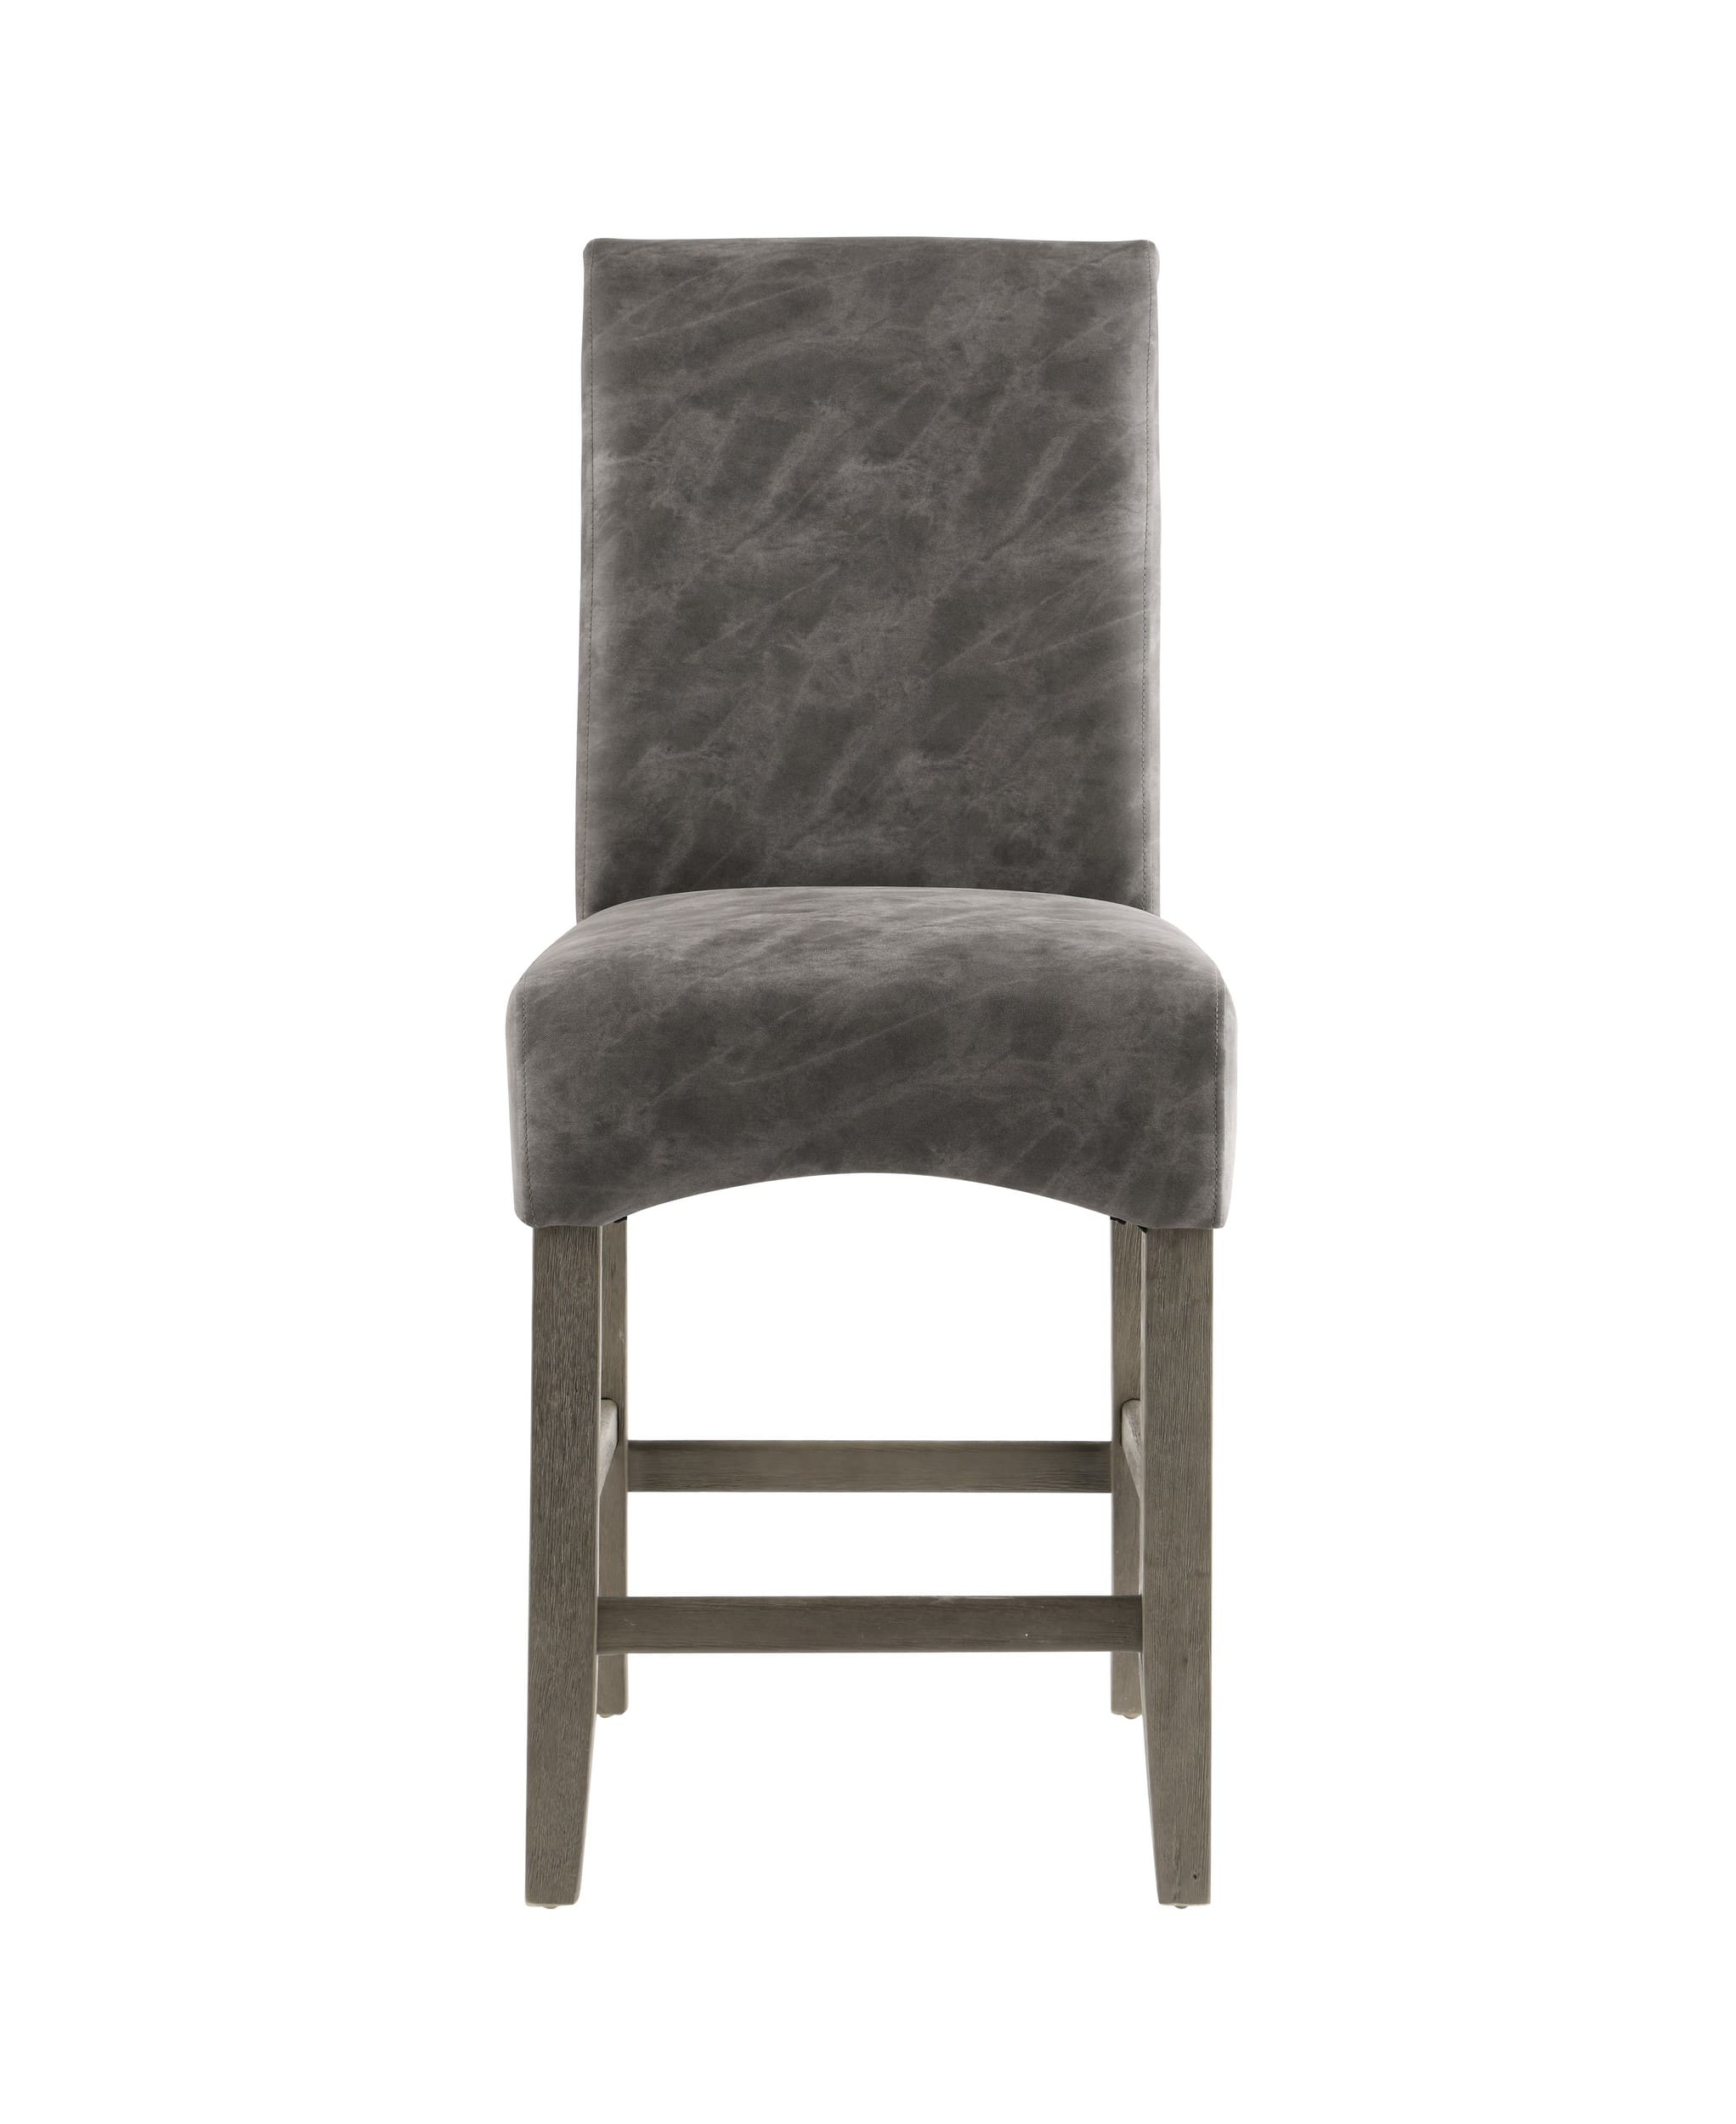 Remarkable Chintaly Imports Marla Prs Bs Gry Beatyapartments Chair Design Images Beatyapartmentscom